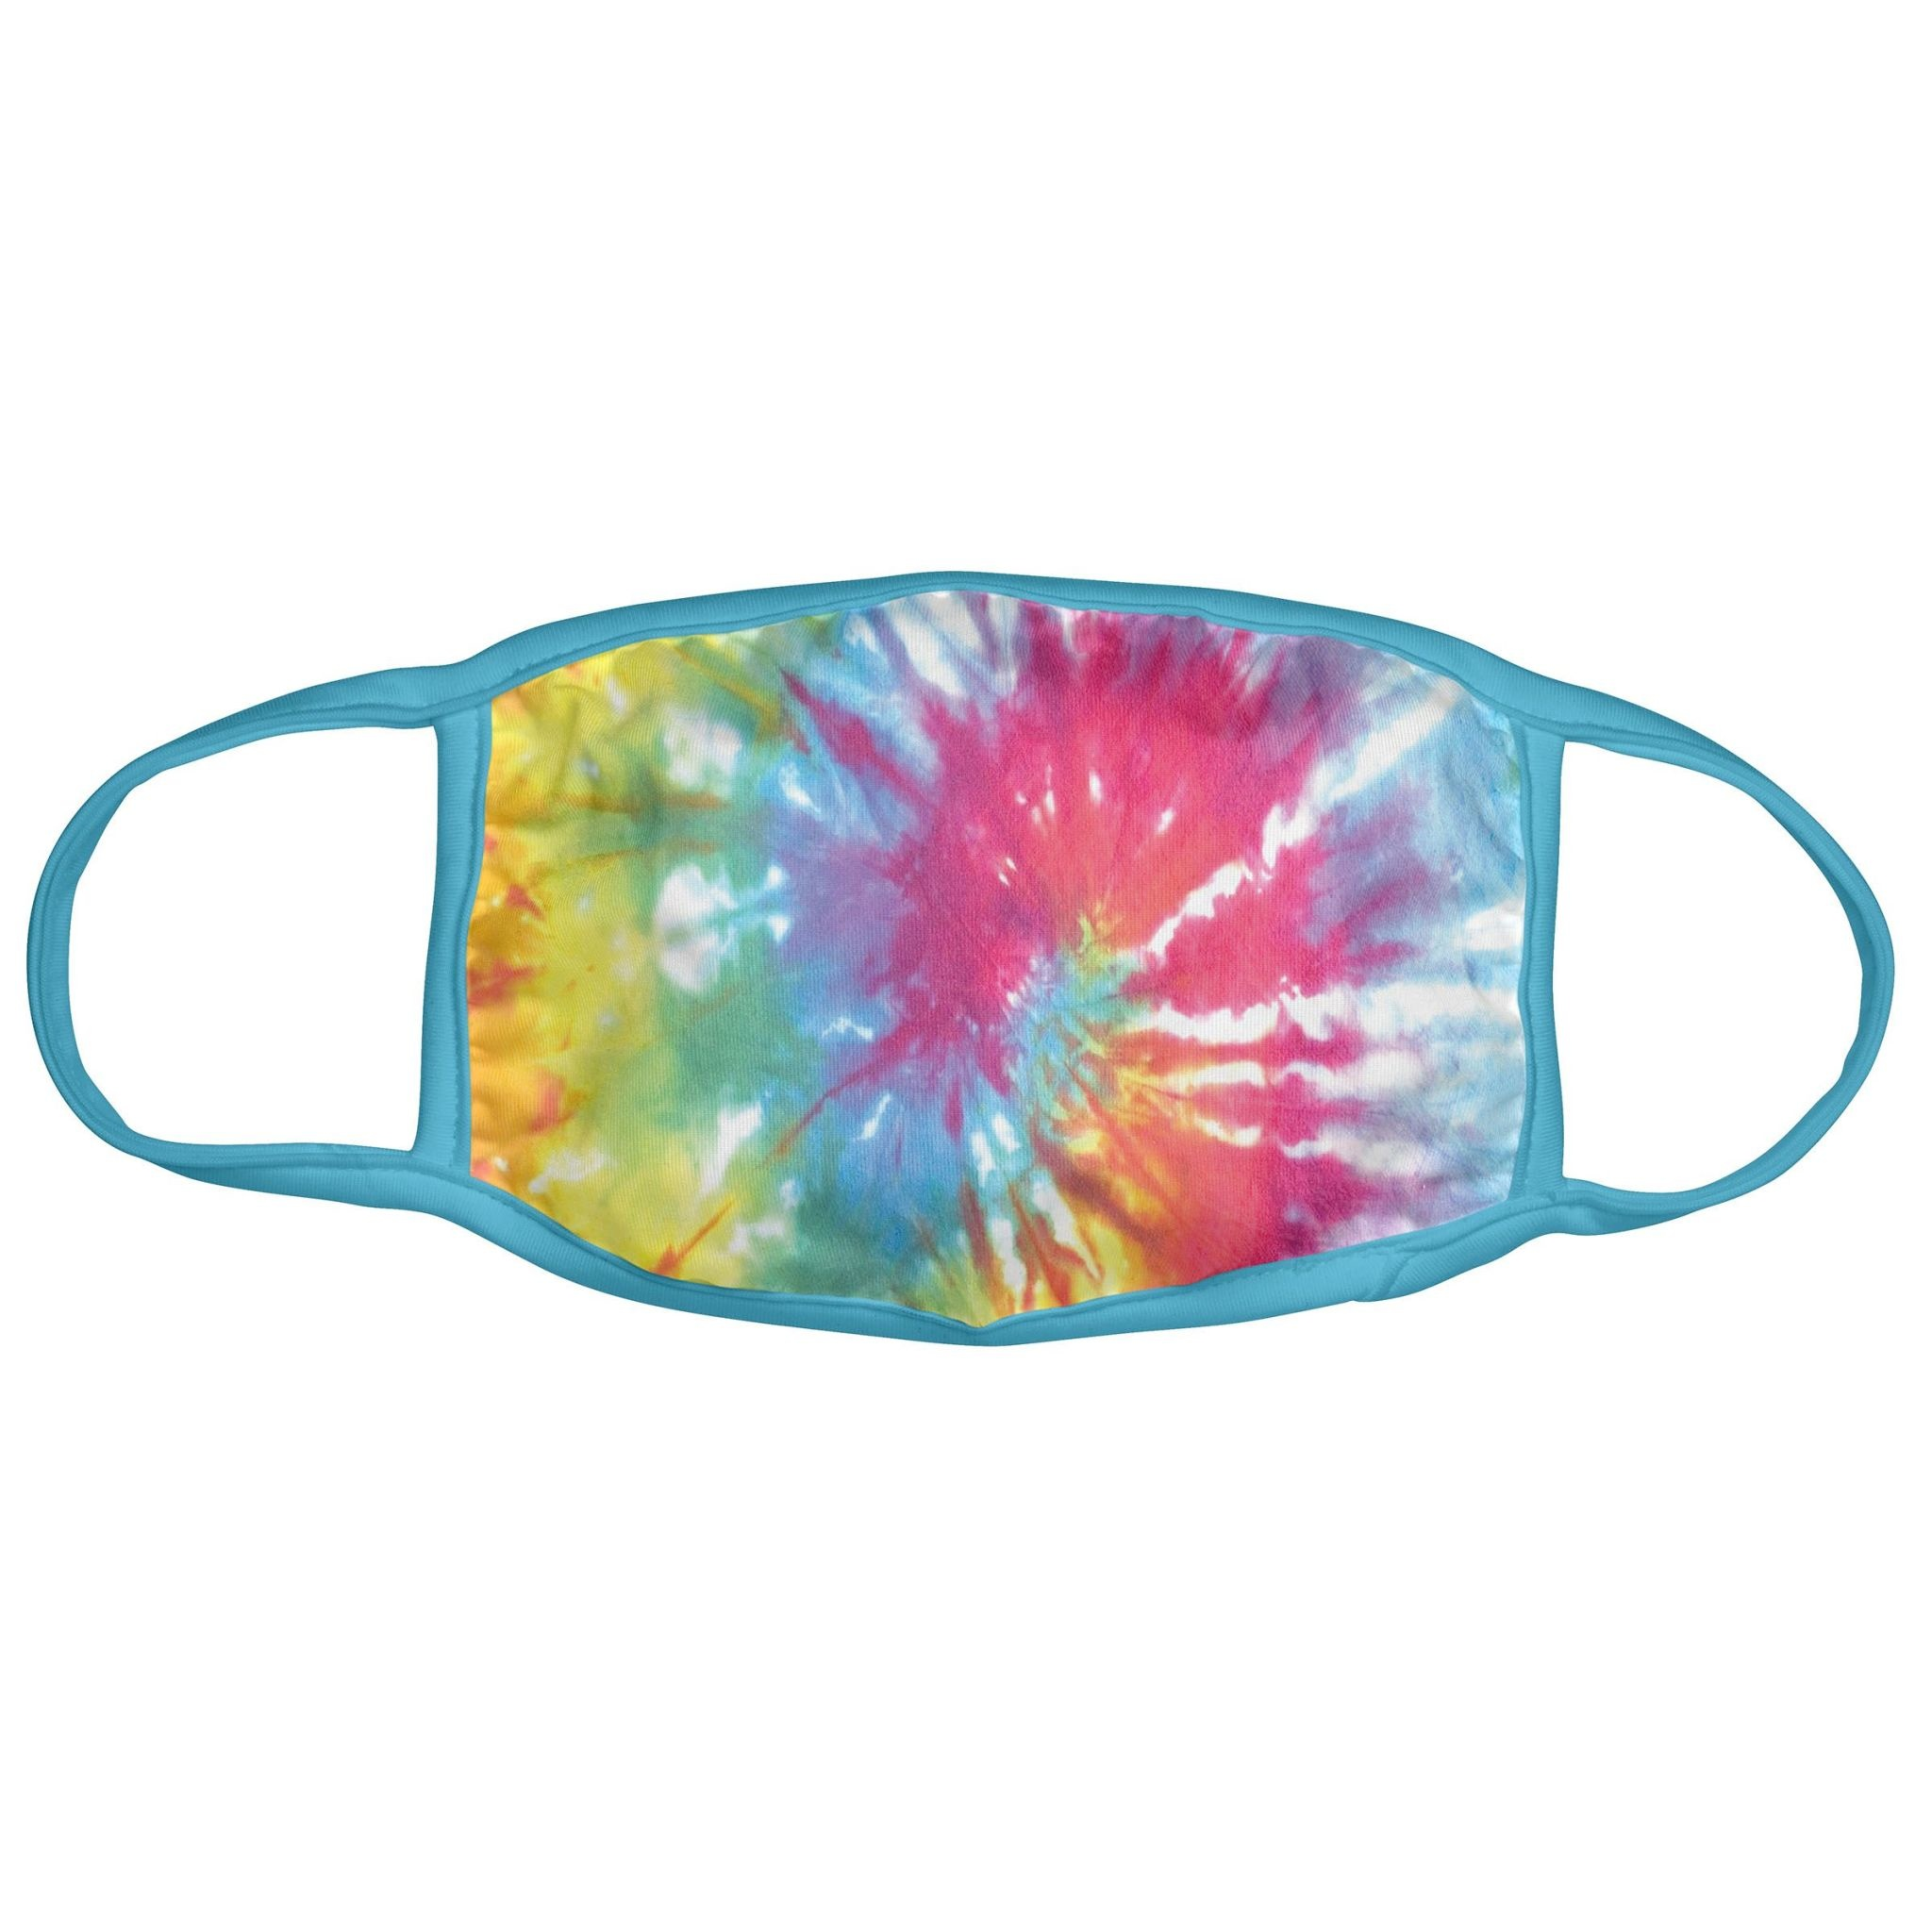 Karma Face Mask - Adult - Rainbow Tie Die